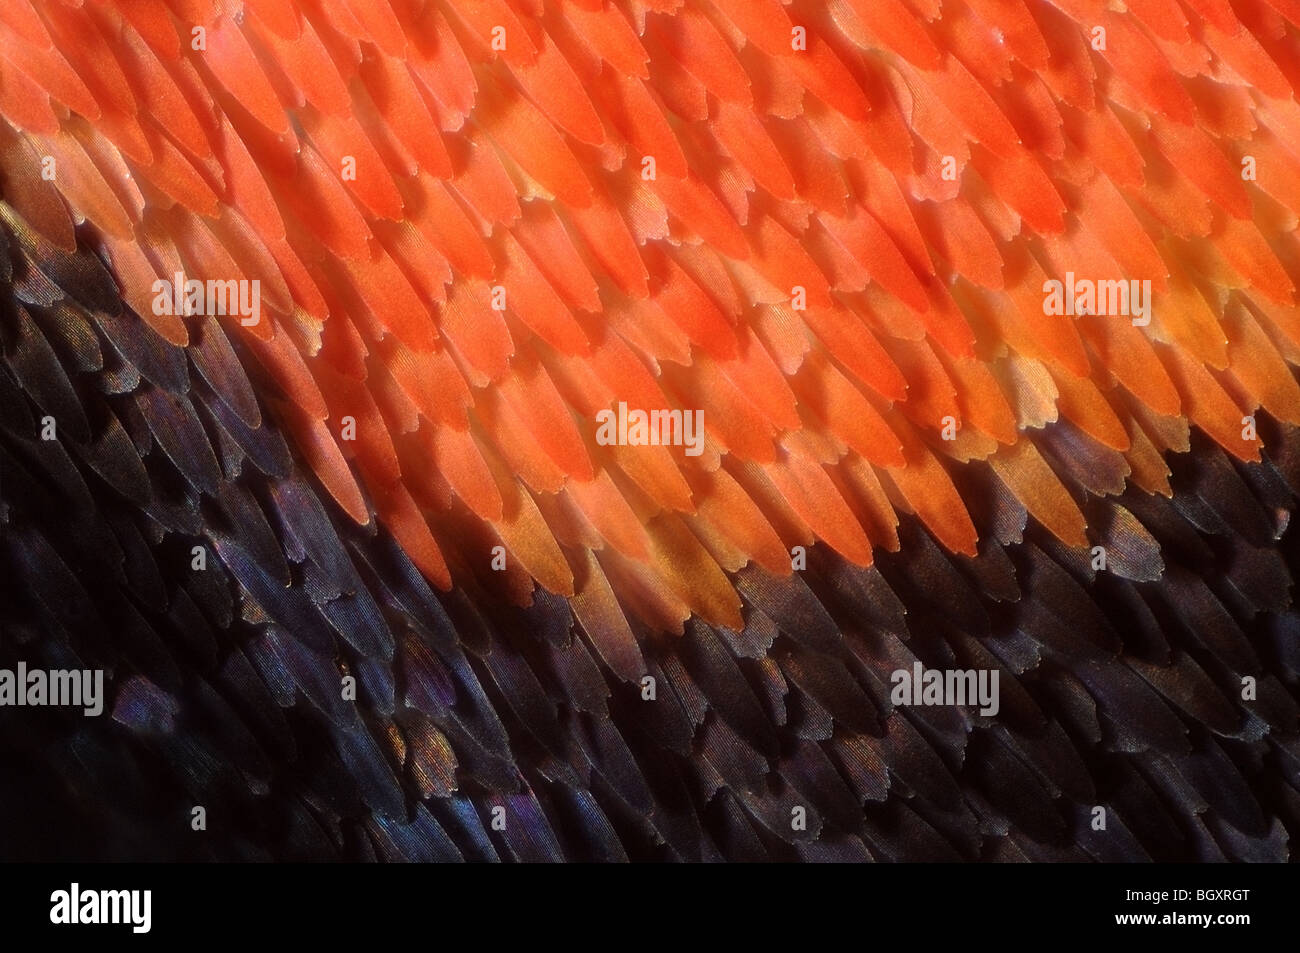 Wing scales of the Scarlet tiger moth, Callimorpha dominula - Stock Image